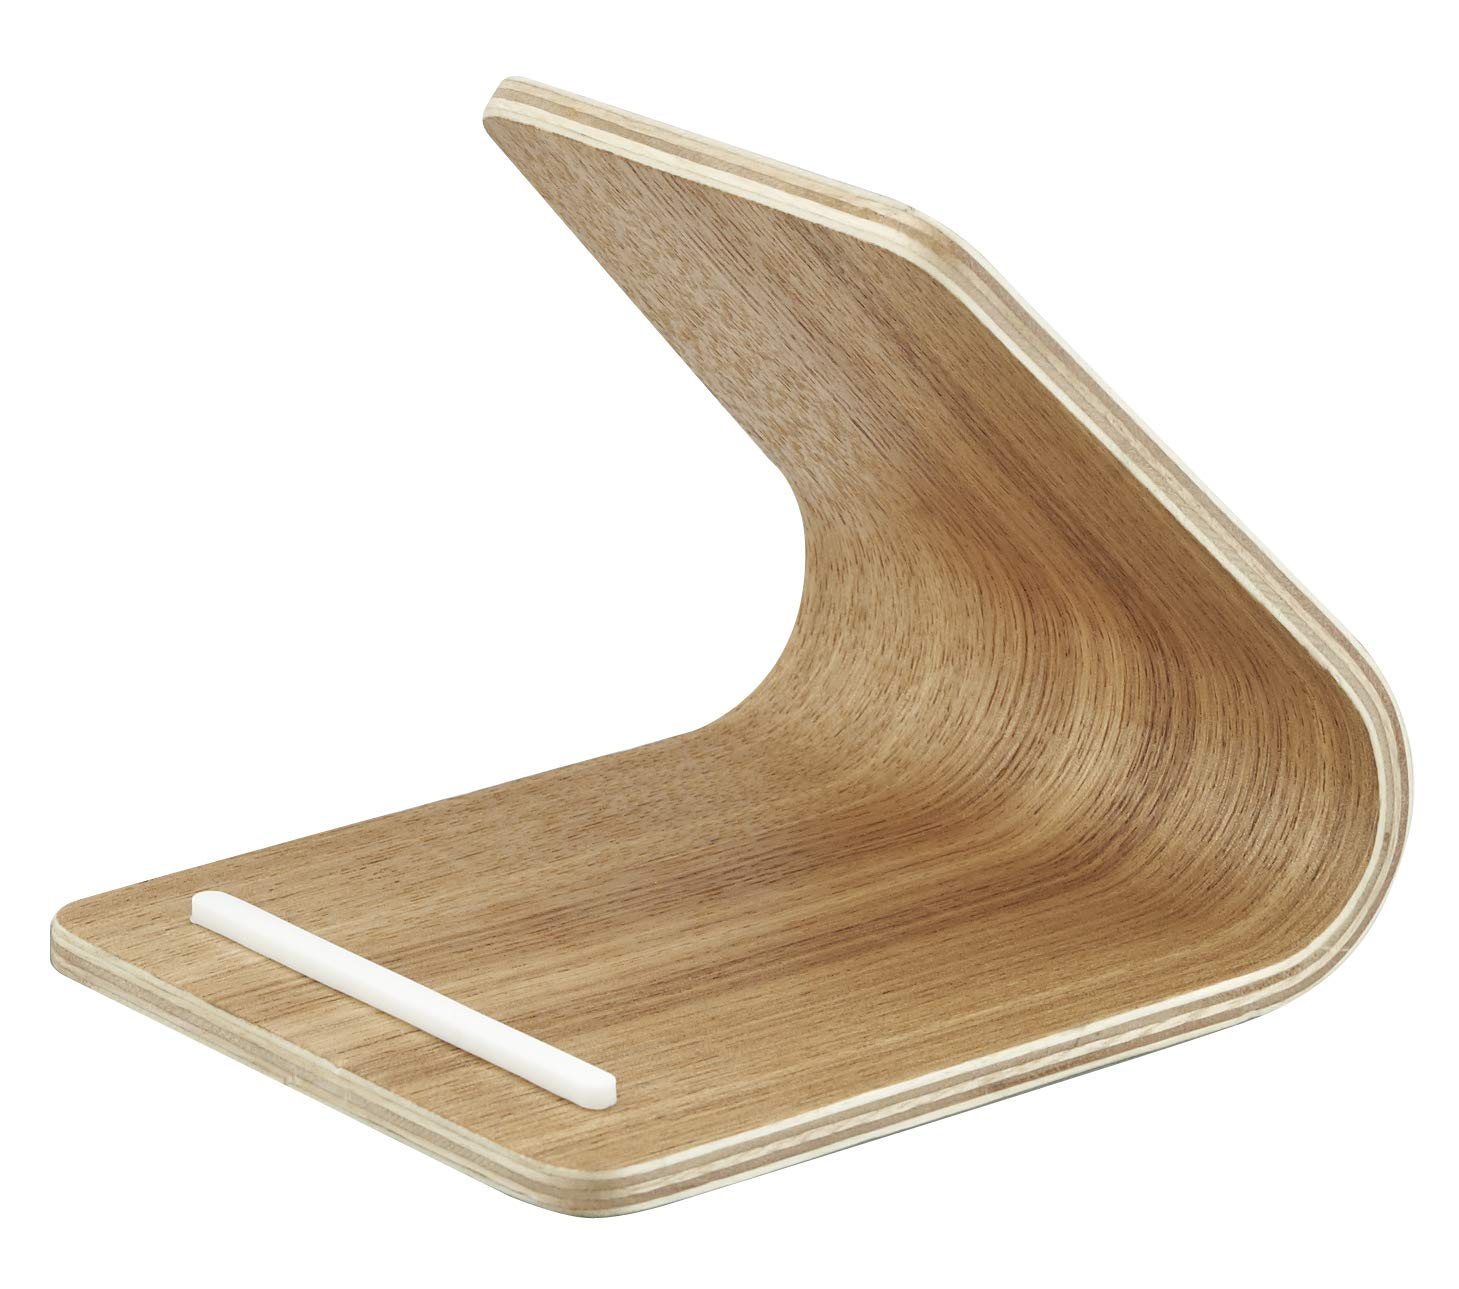 YAMAZAKI home 7327 Rin Plywood Tablet Stand, Beige, Natural